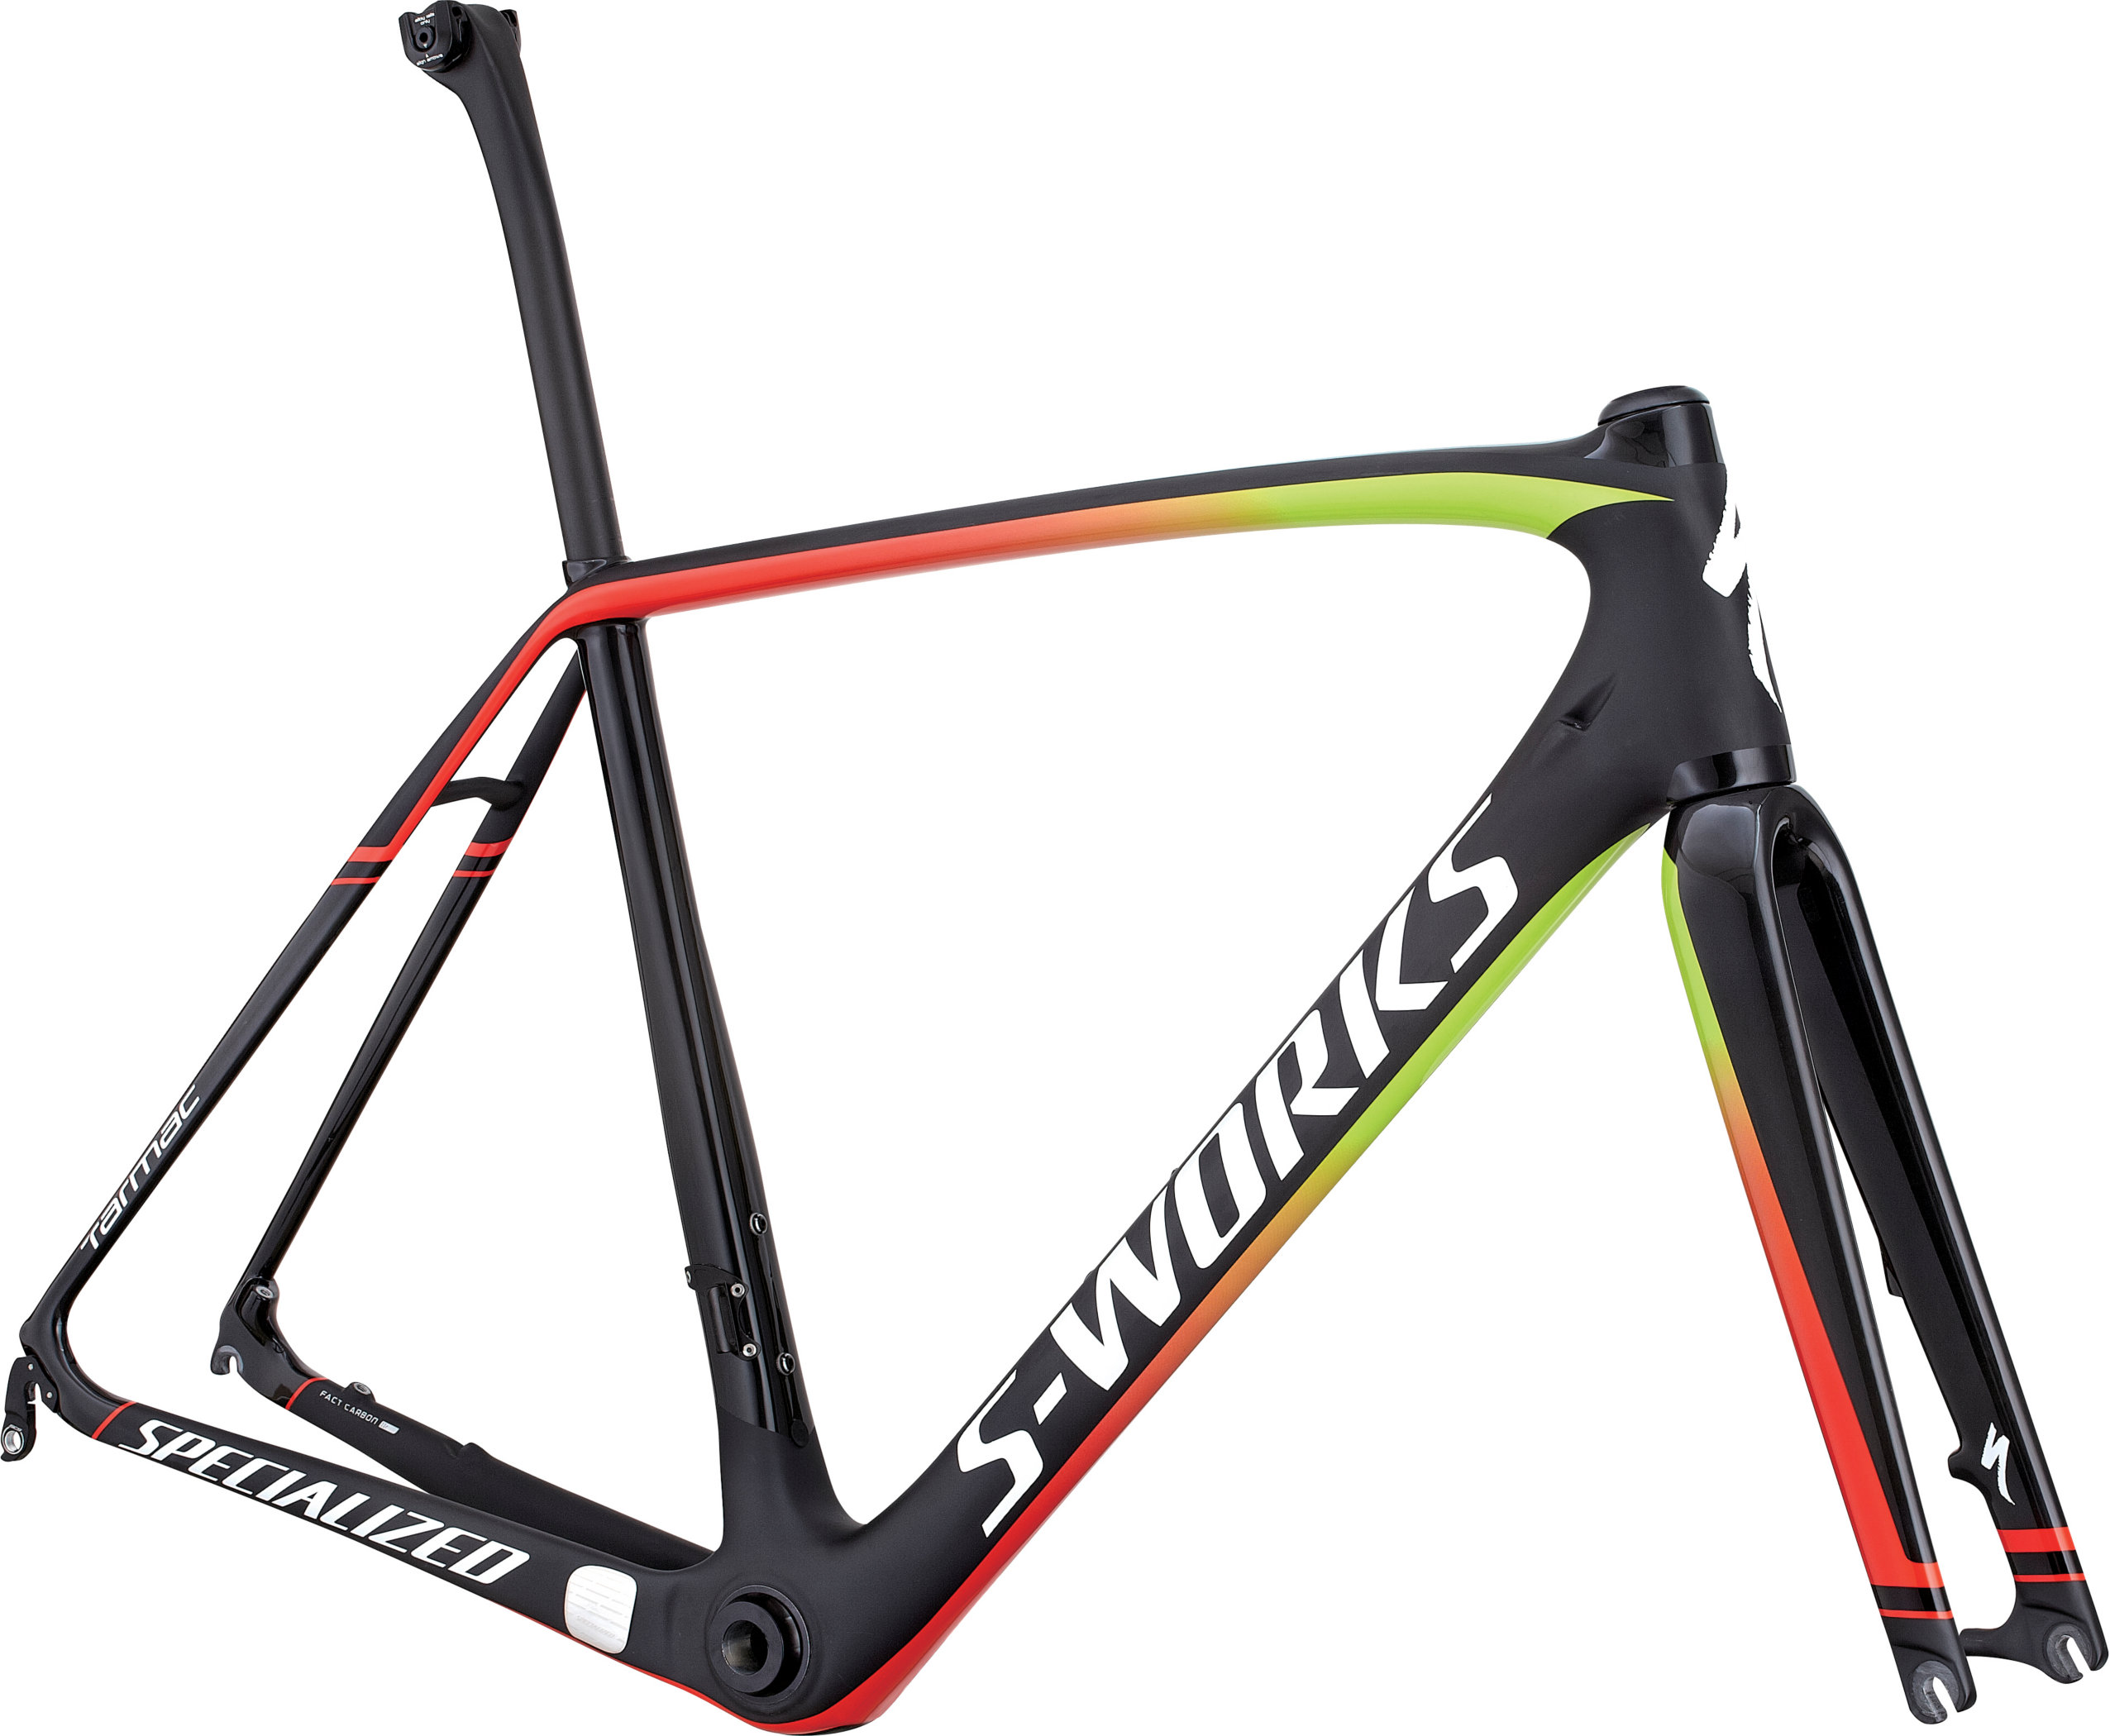 SPECIALIZED SW TARMAC DISC FRMSET CARB/HYP/RKTRED 49 - Bikedreams & Dustbikes